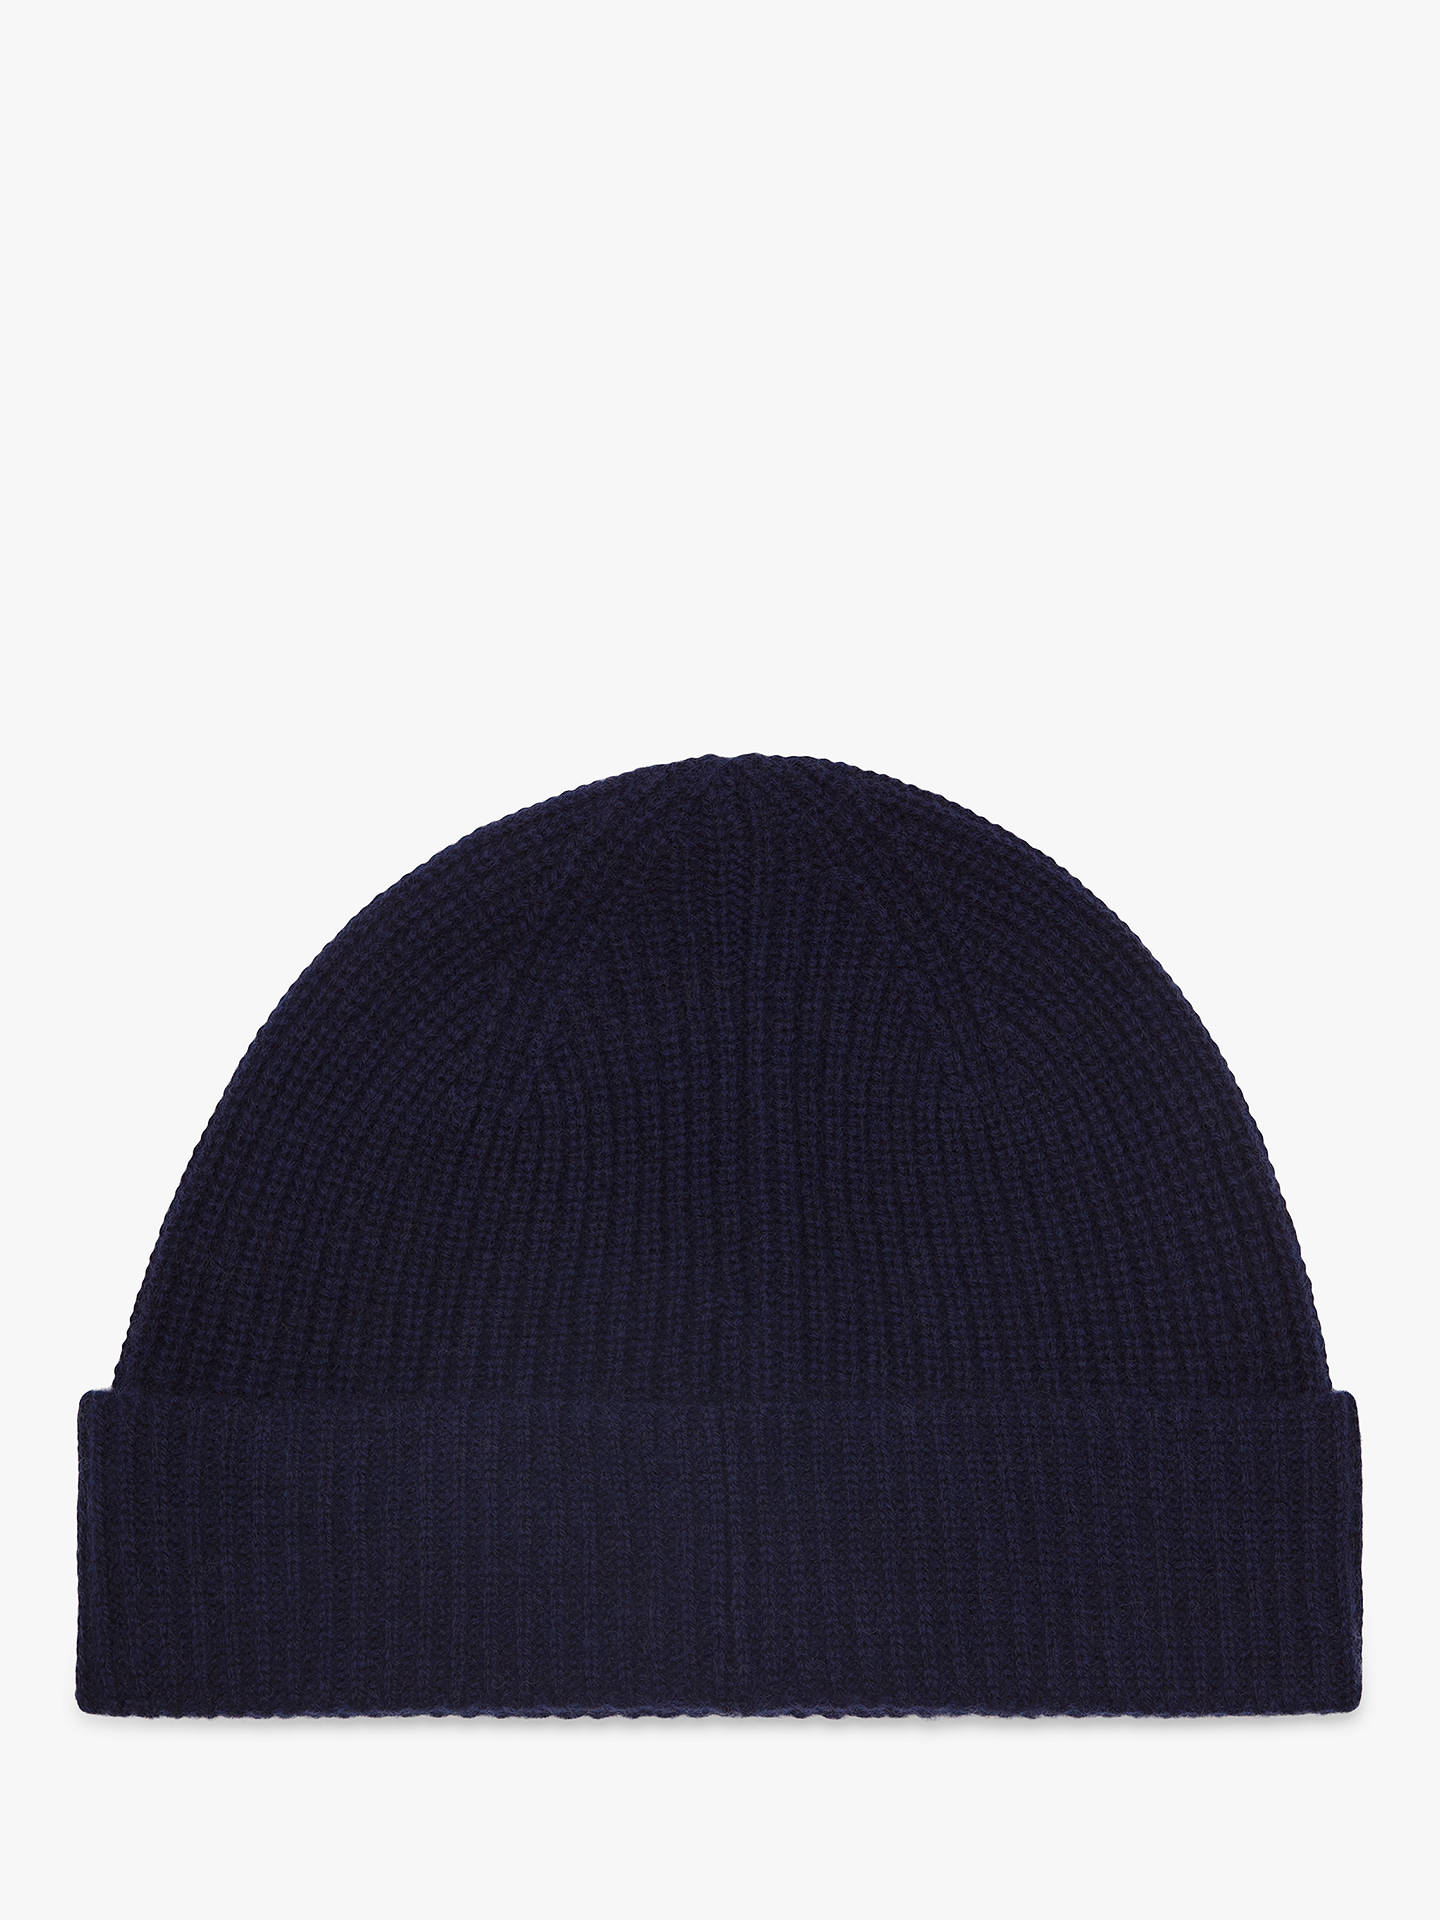 017cd44f64604 Reiss Emmerson Cashmere Beanie Hat at John Lewis & Partners